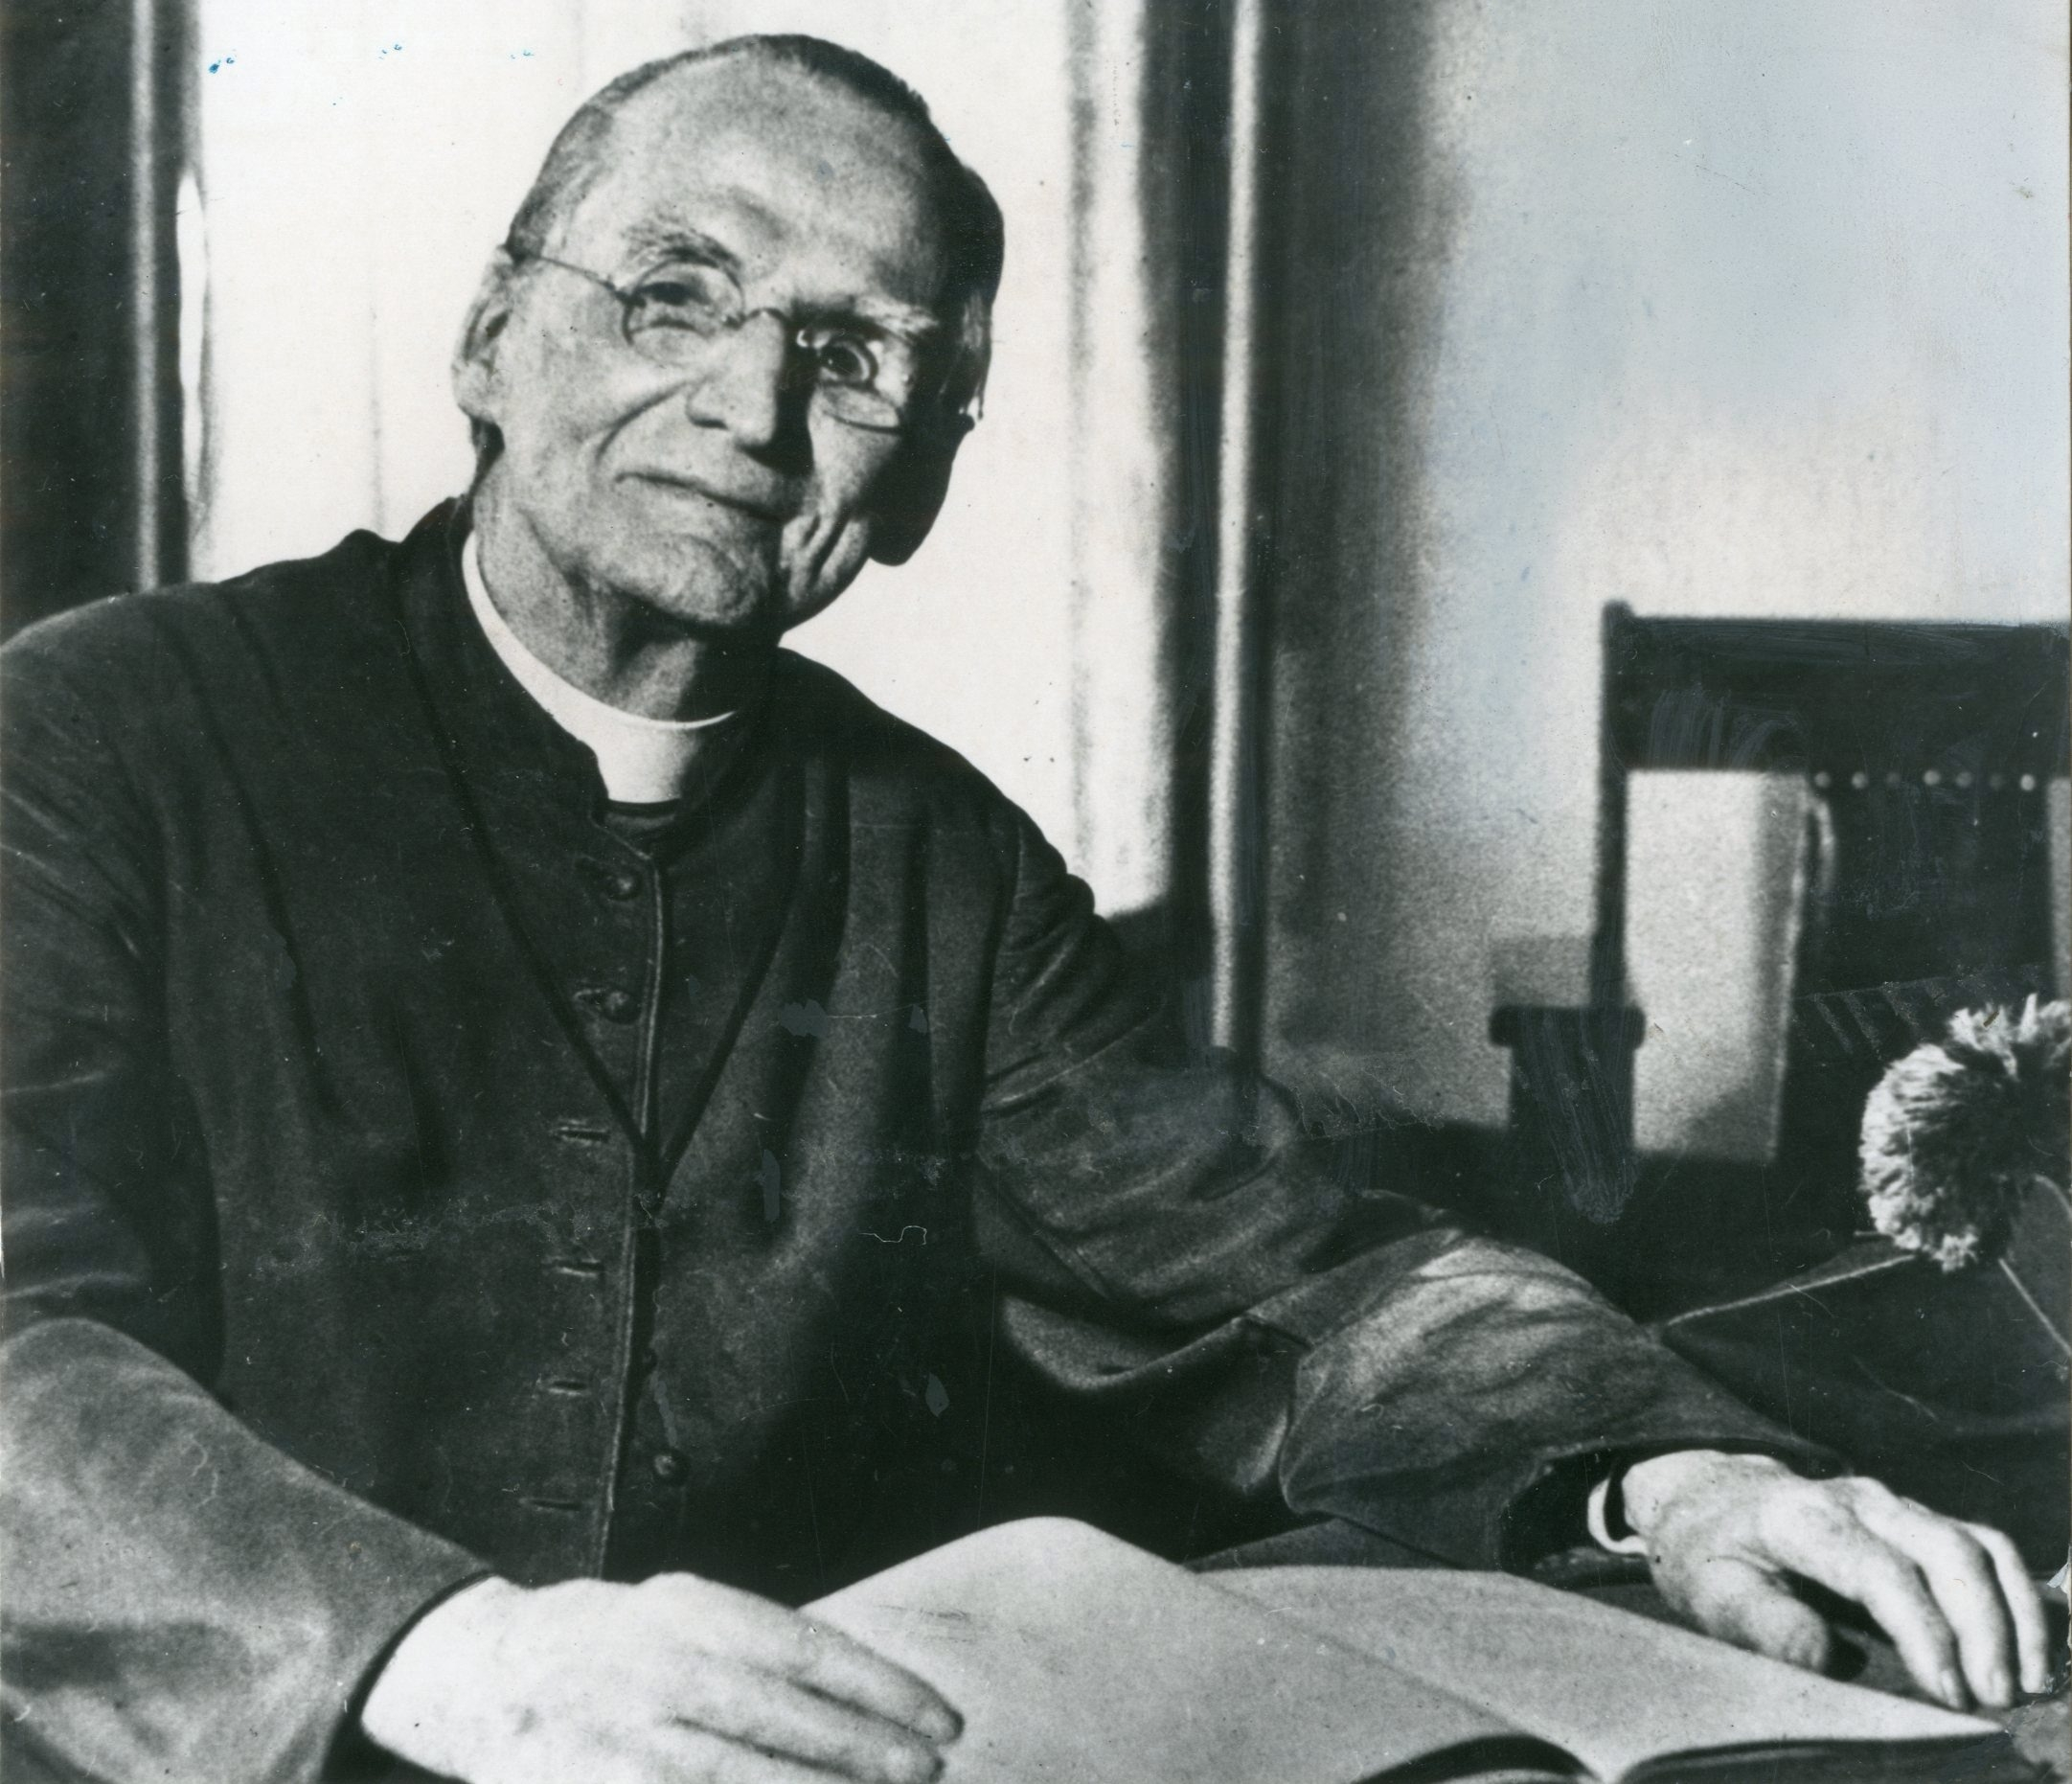 """Father Nelson Baker's varied ministries testify to his """"heroic virtue,"""" which is one qualifier for sainthood."""